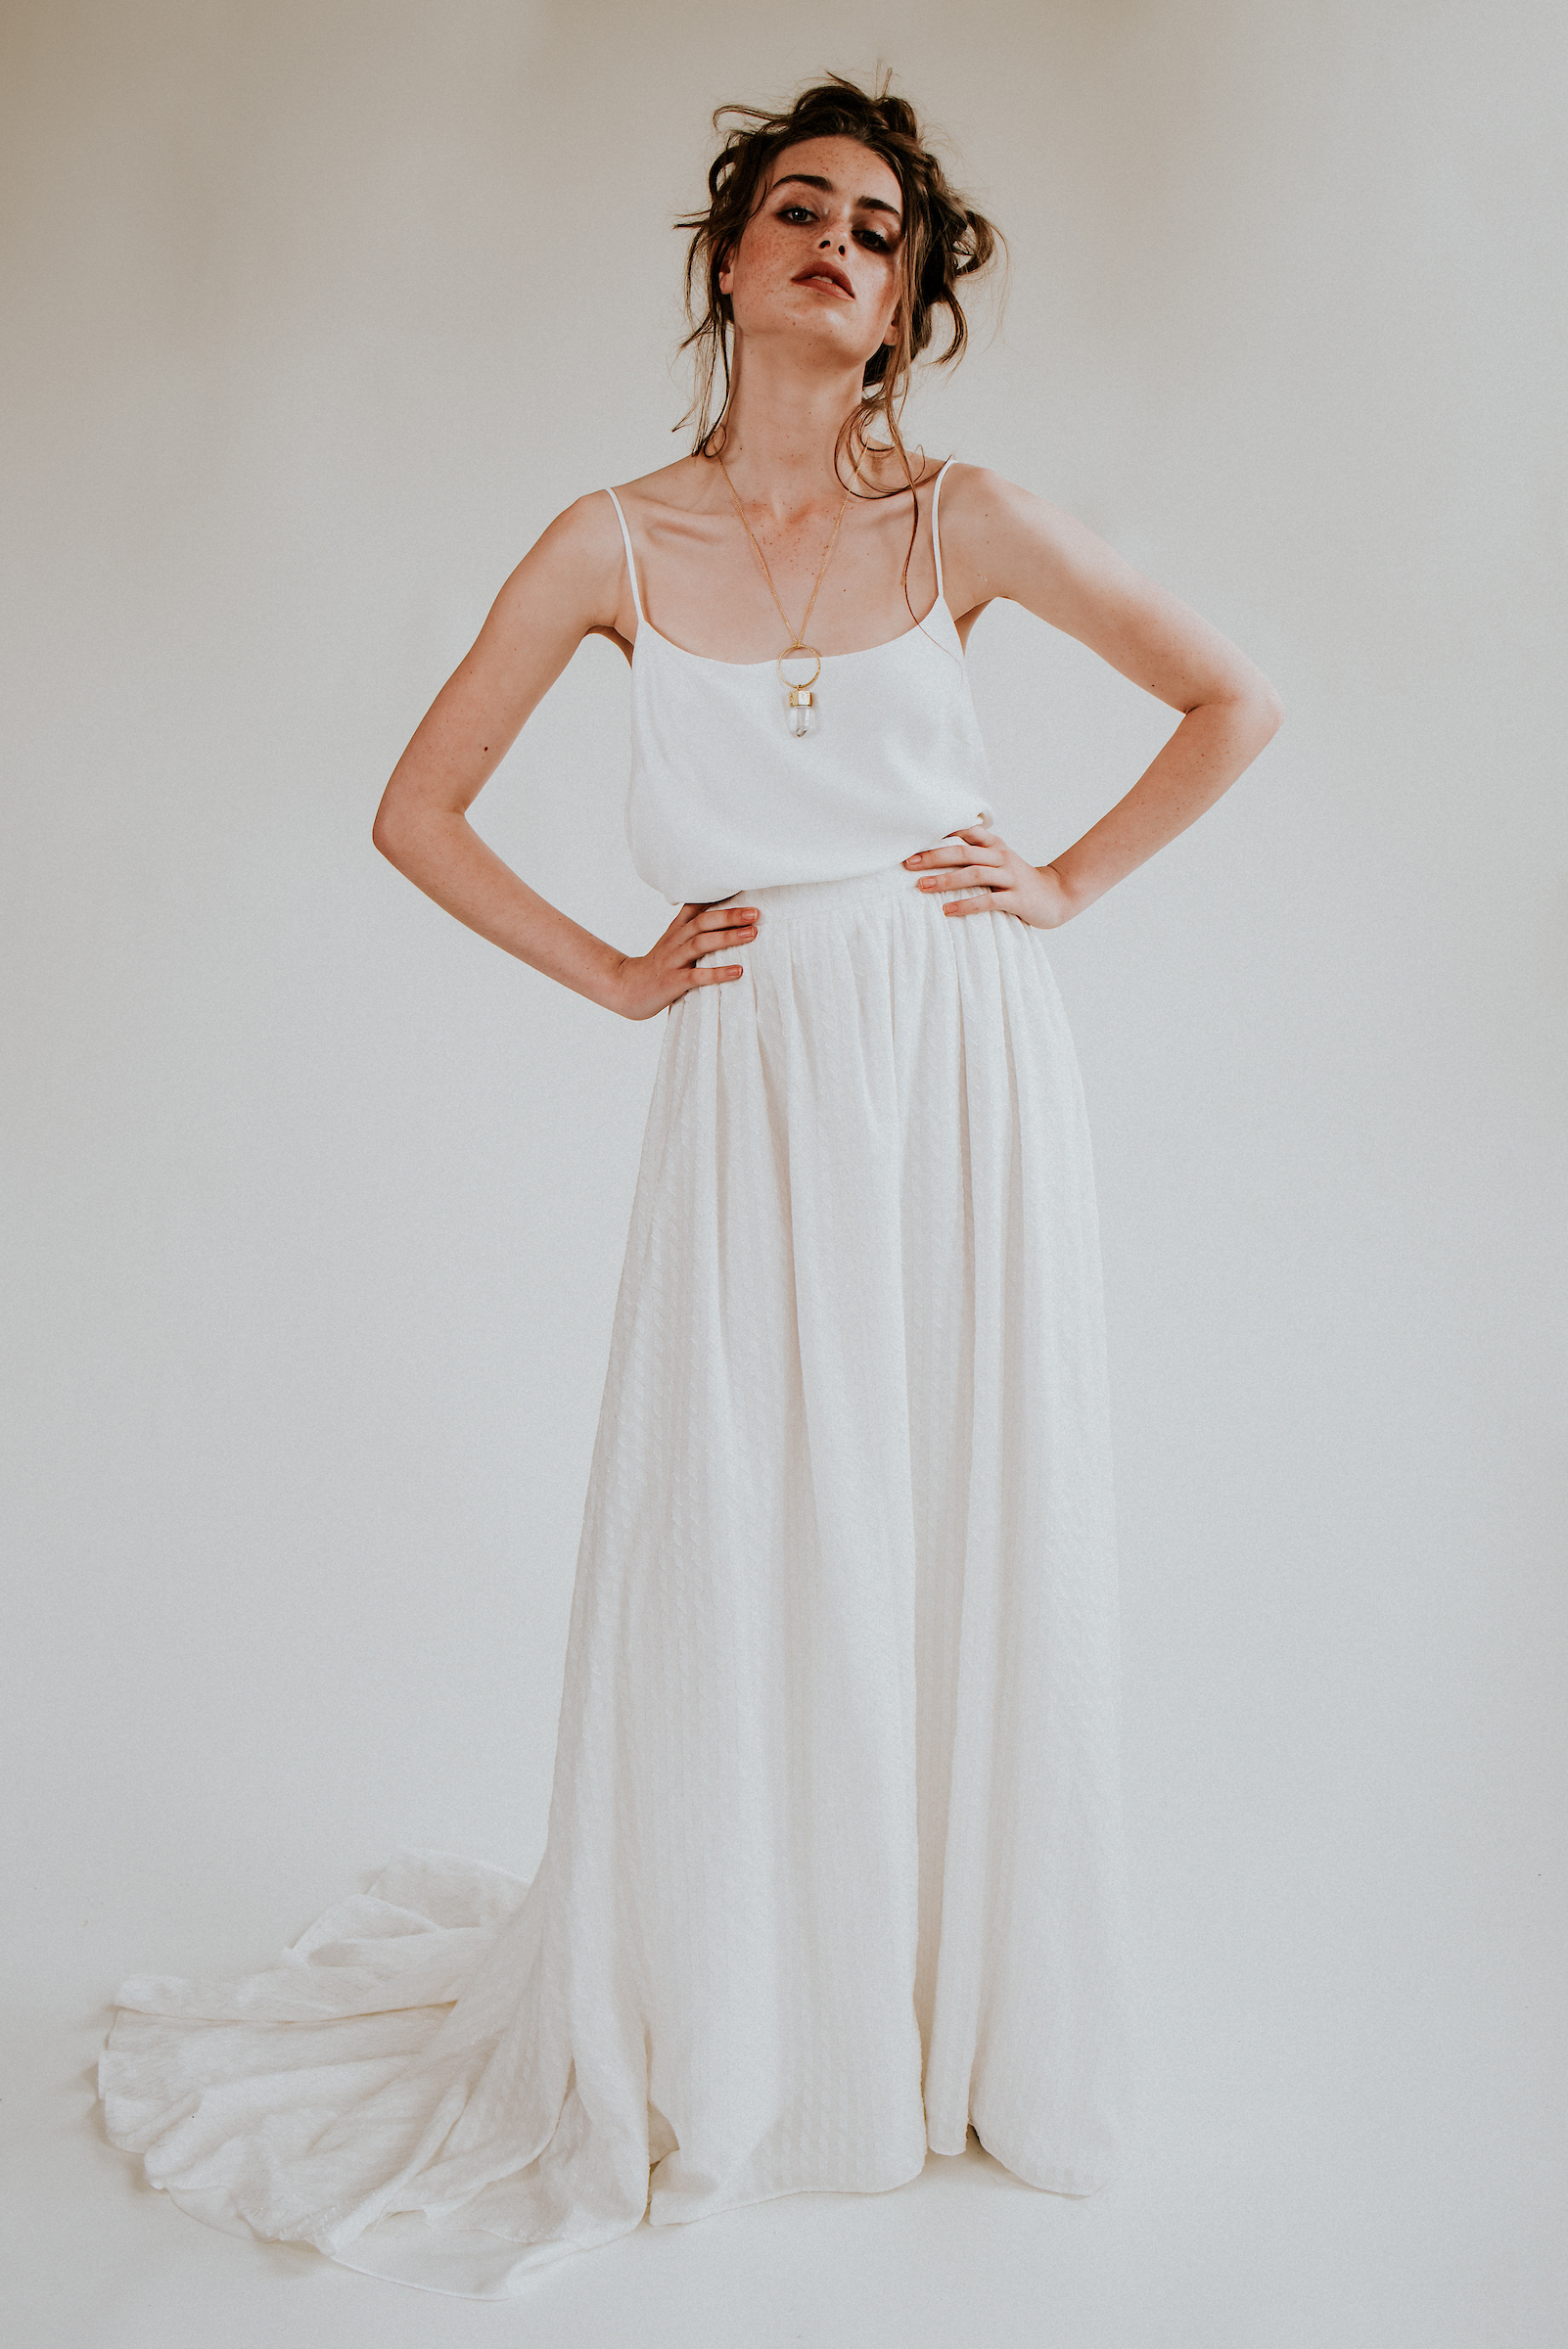 modern boho bridal separates from sustainable bridal label Rolling in Roses